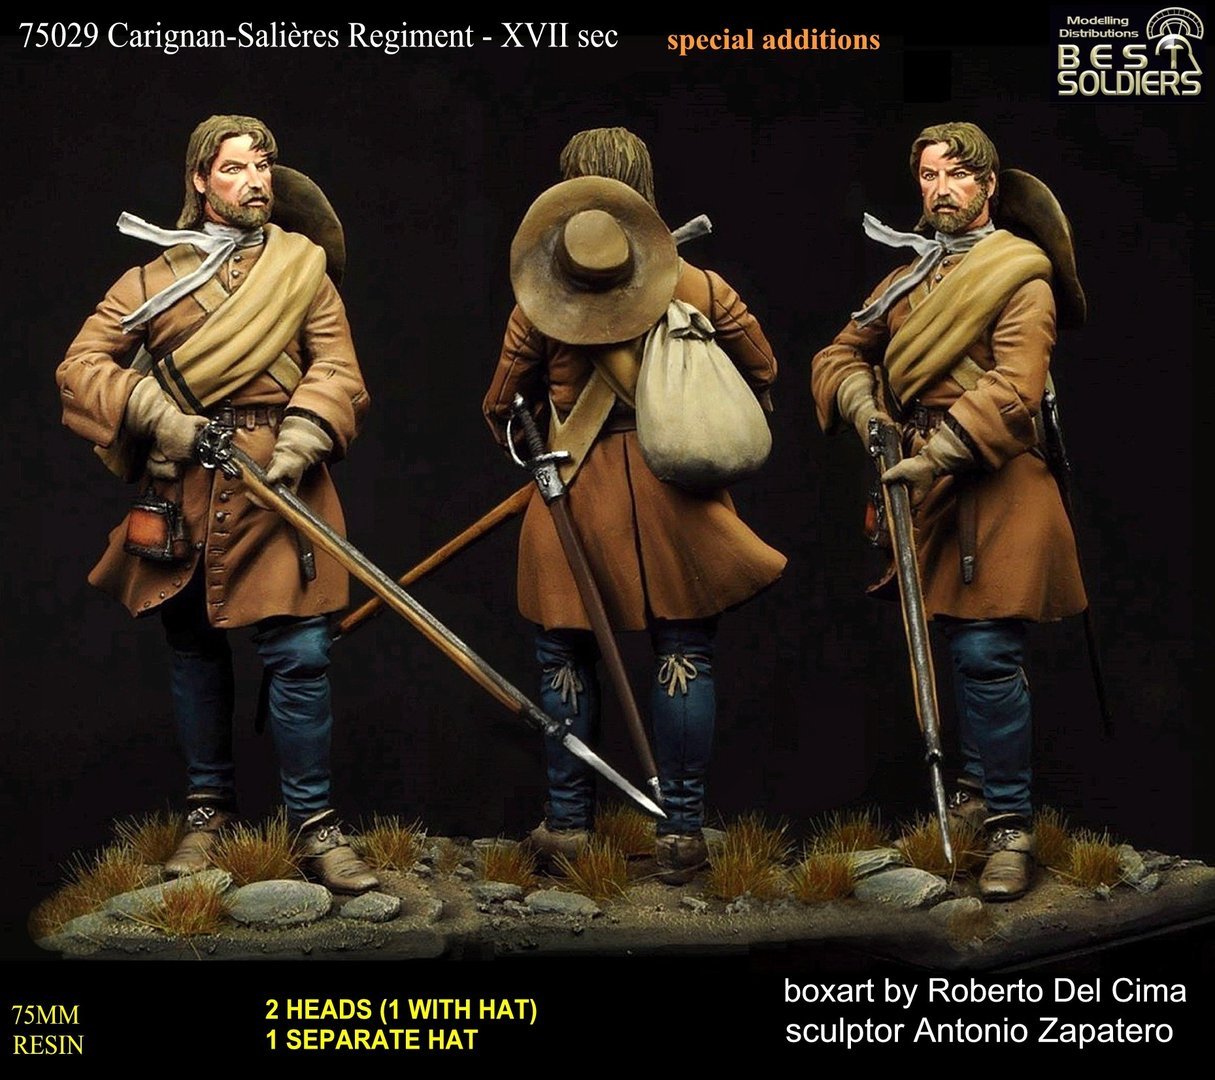 2° Version Carignan-Salières Regiment - XVII _(75029/75012)